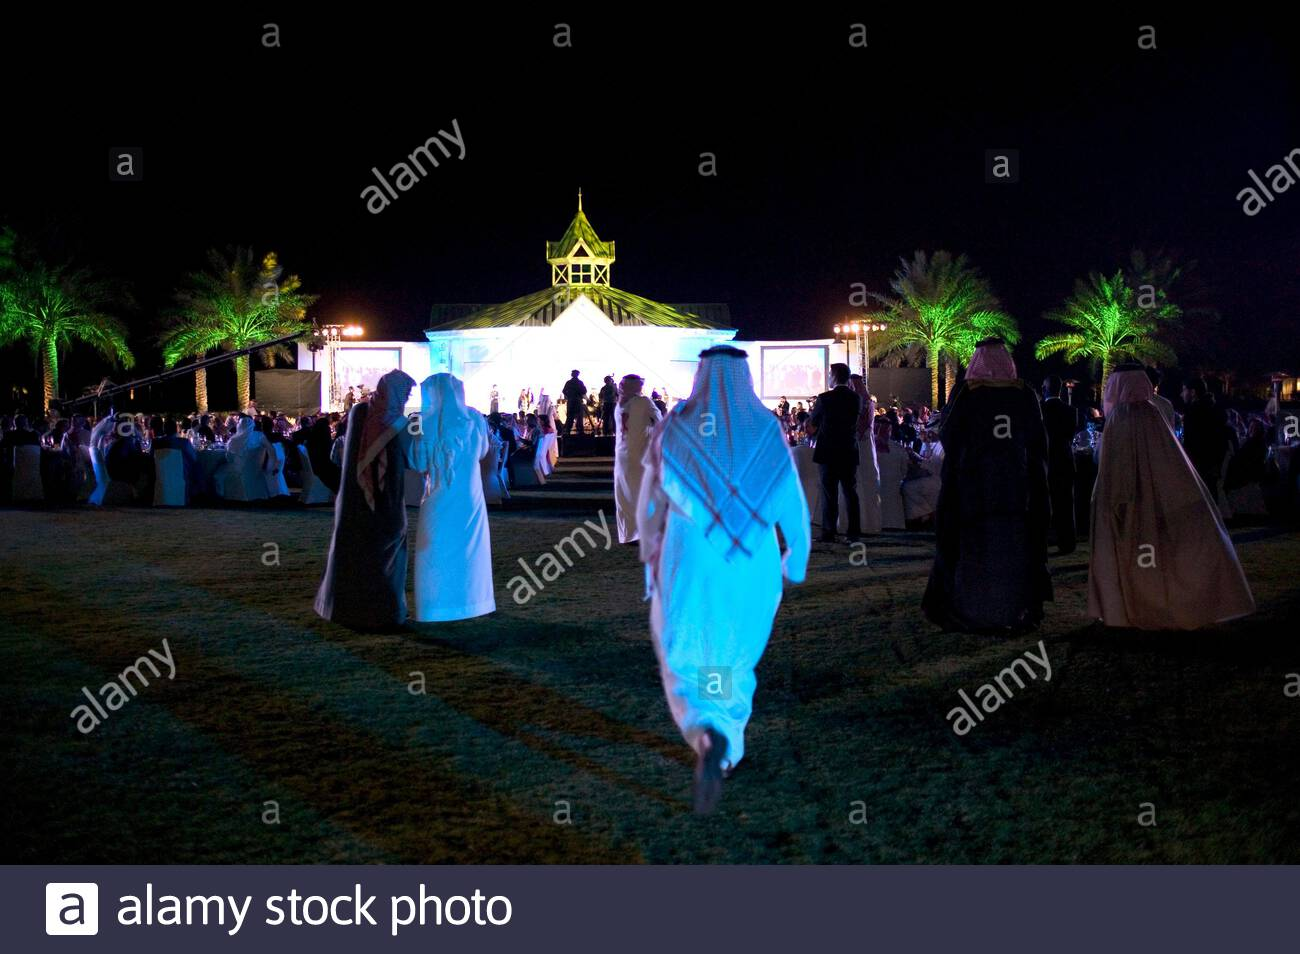 The closing night of FIKR conference 2007 in Manama, Bahrain. Stock Photo